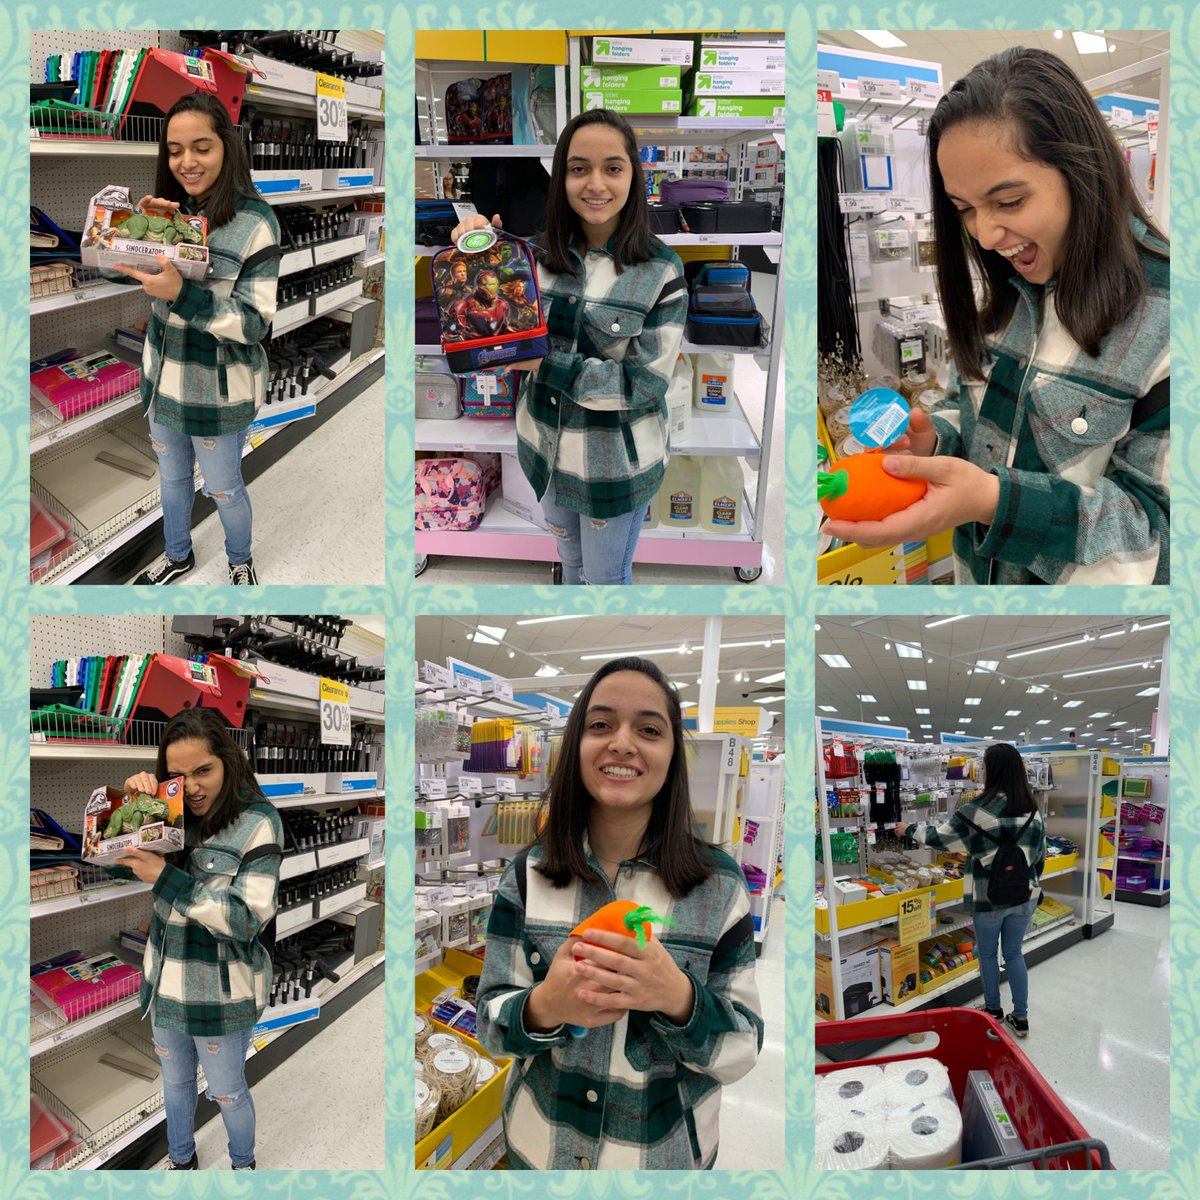 School supply shopping has been our aunt/niece tradition since she was in Pre-K. This is the 14th year (possibly the last) as she begins her senior year of high school. Where has the time gone?! #favoritehuman #tradition #favoriteniece <br>http://pic.twitter.com/BOUfCrUc6A